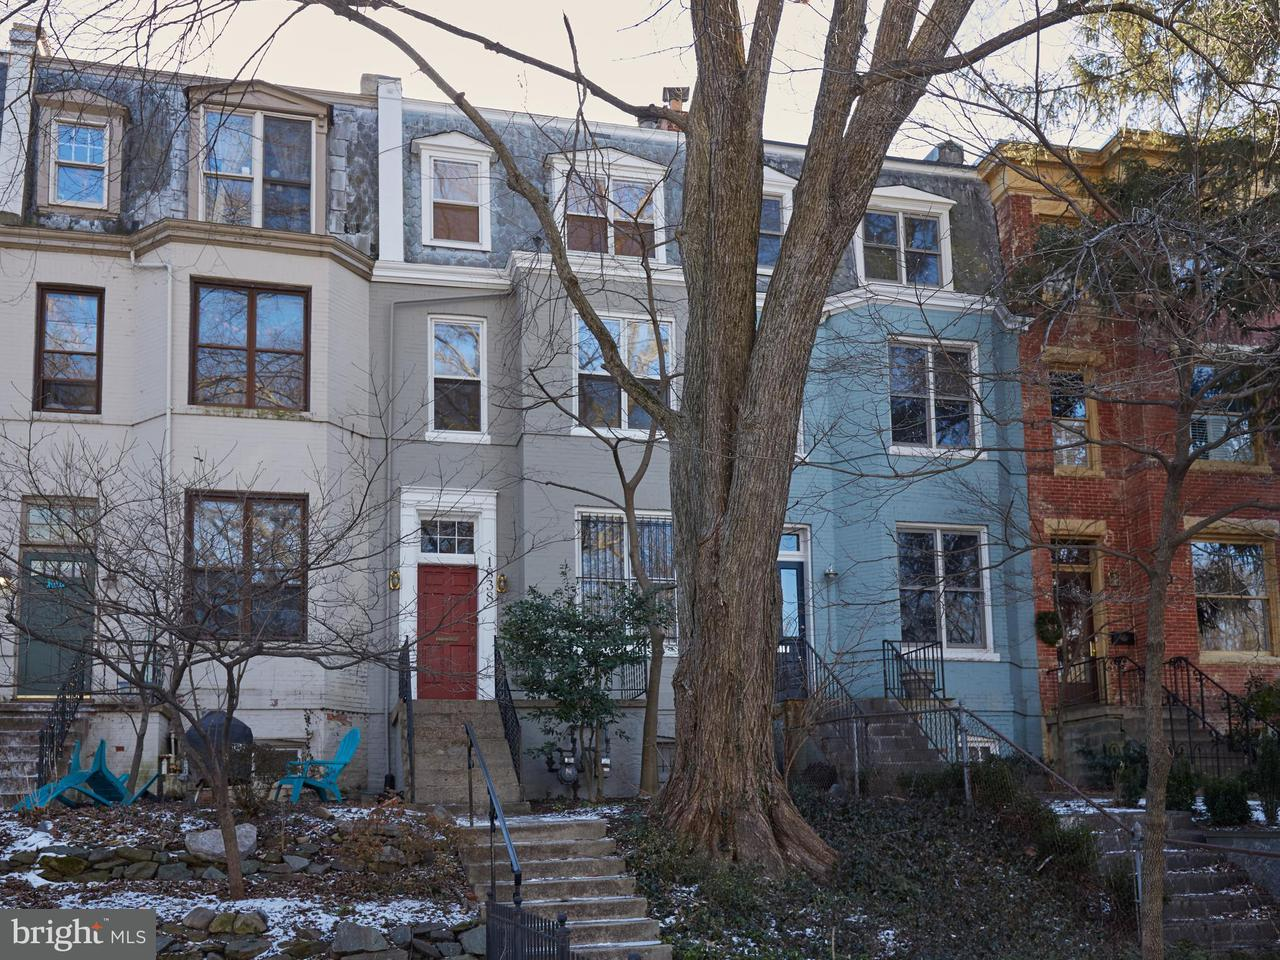 Townhouse for Sale at 1838 Ingleside Ter Nw 1838 Ingleside Ter Nw Washington, District Of Columbia 20010 United States